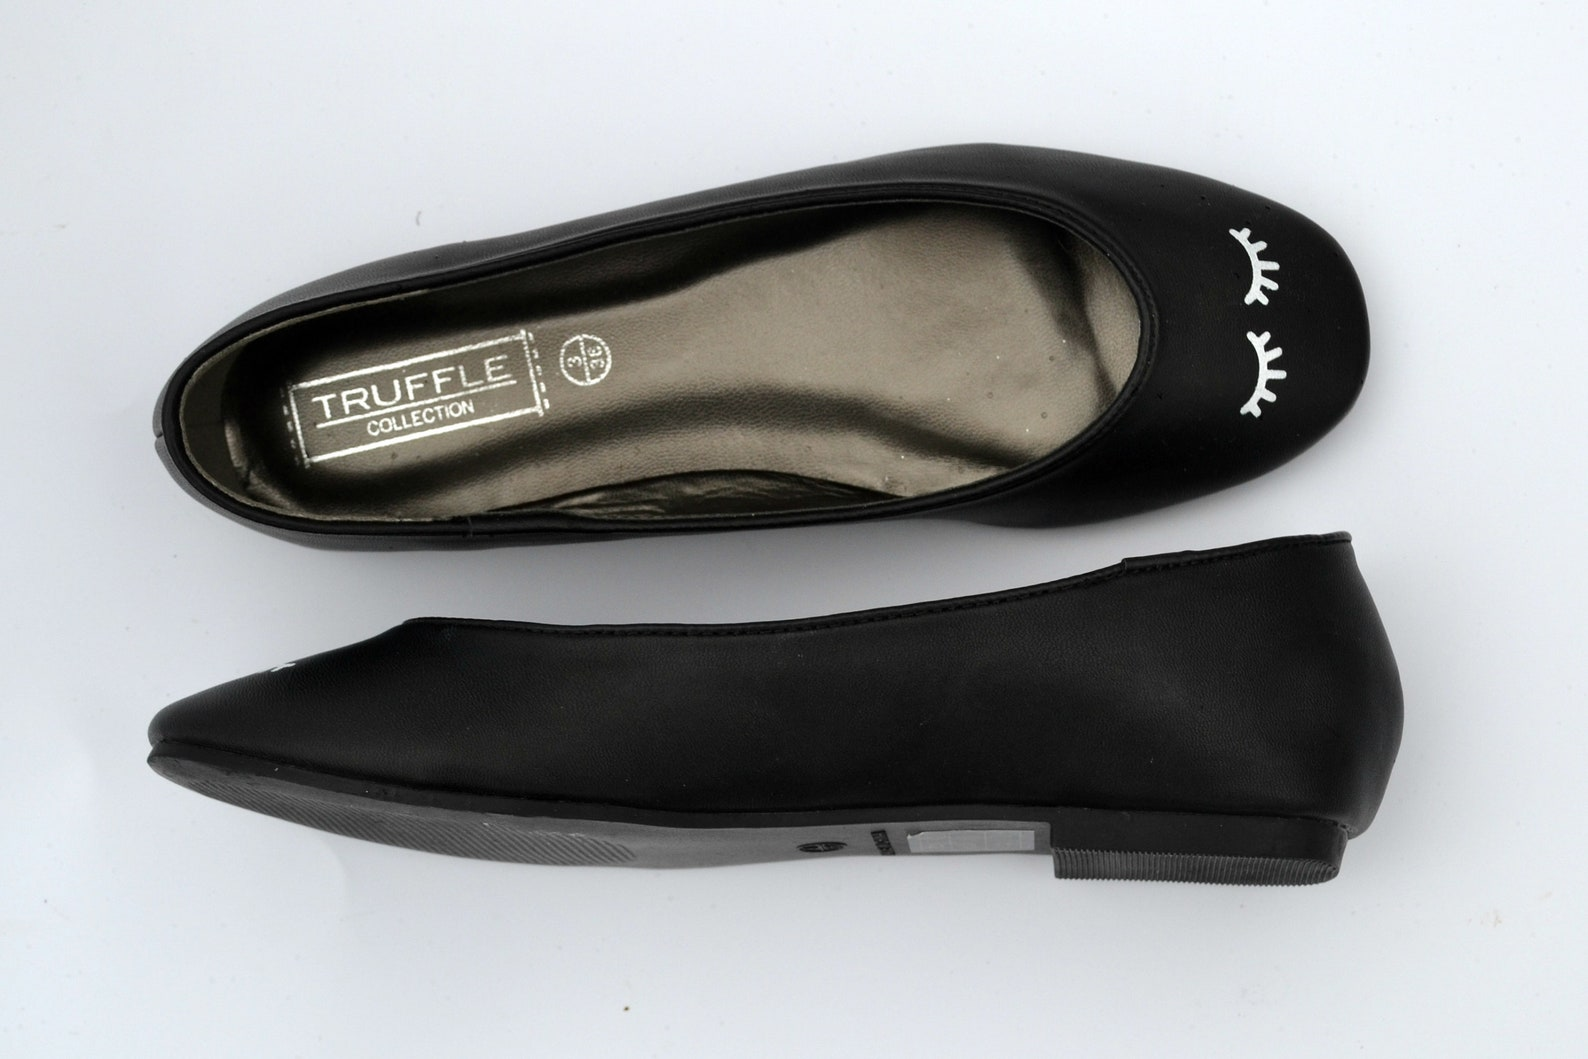 ballet flats, kawaii shoes, women's pumps, black shoes, flat shoes, eyelash fashion, back to school, black and white, cute,